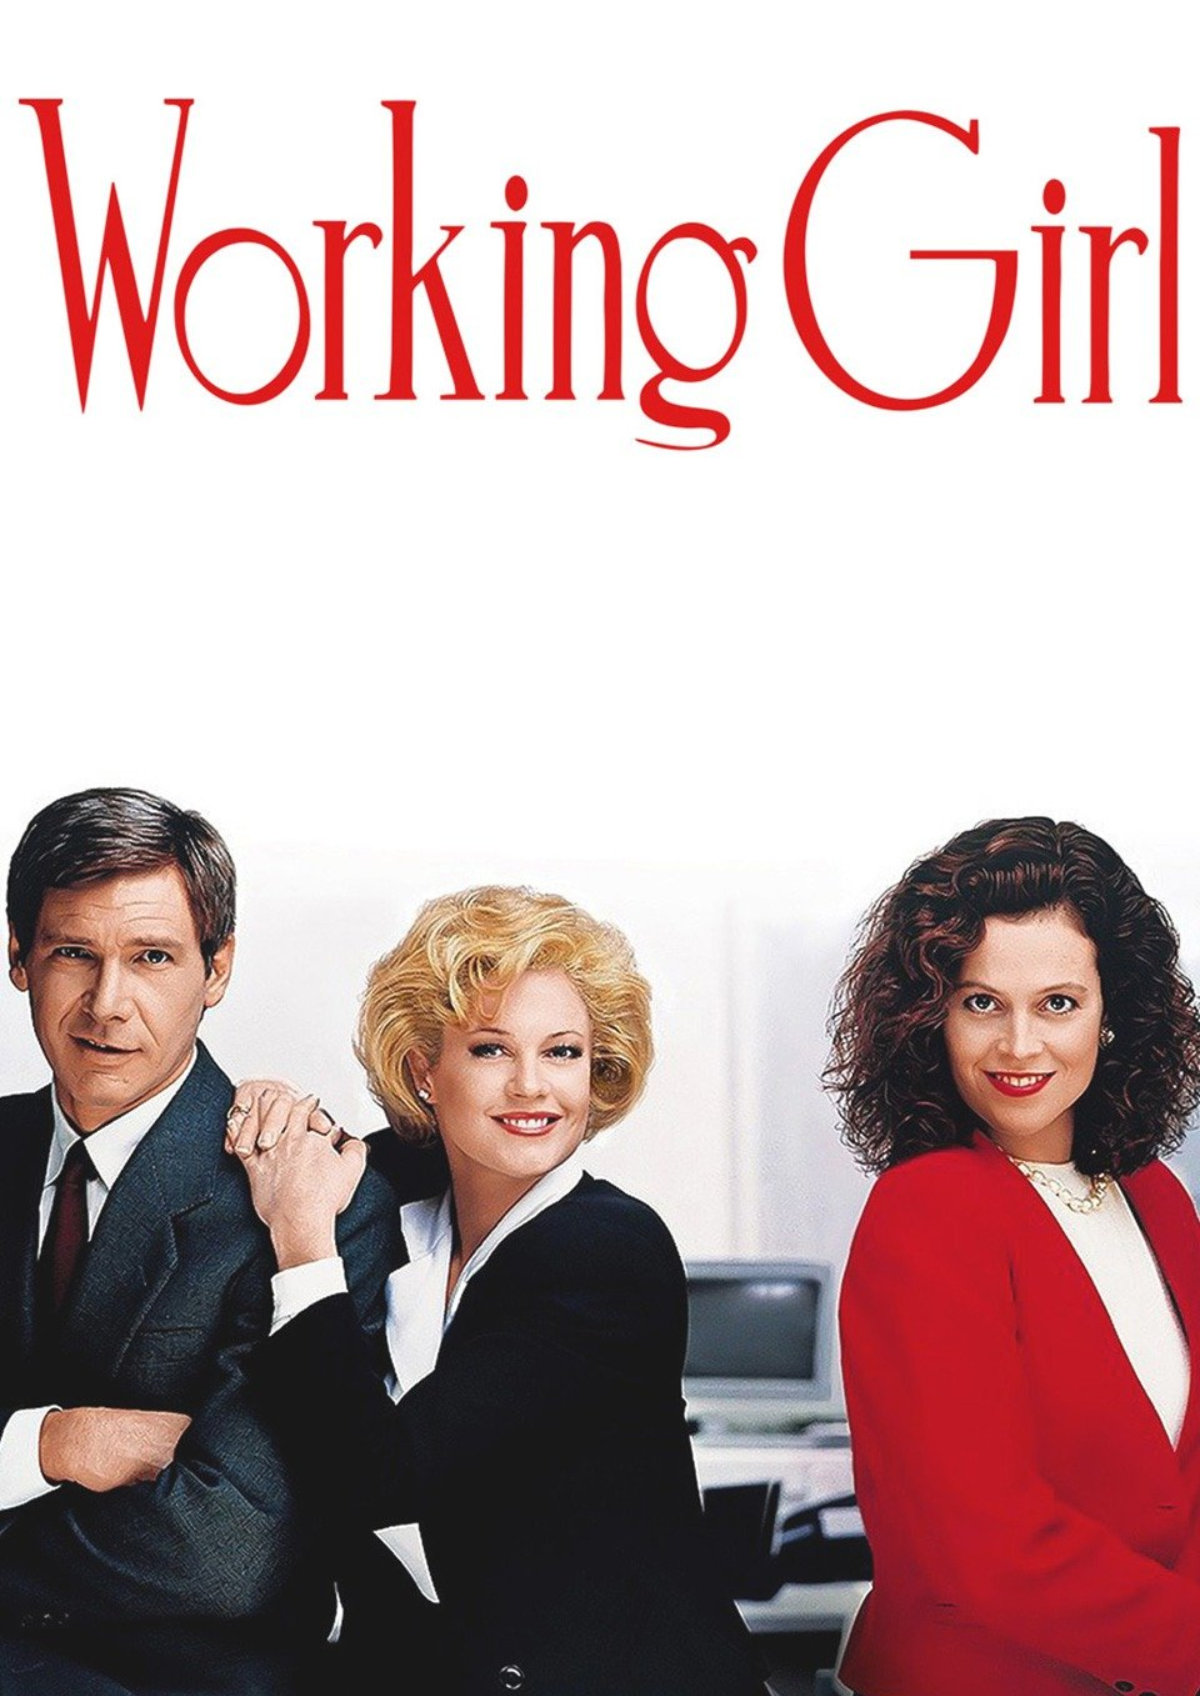 'Working Girl' movie poster